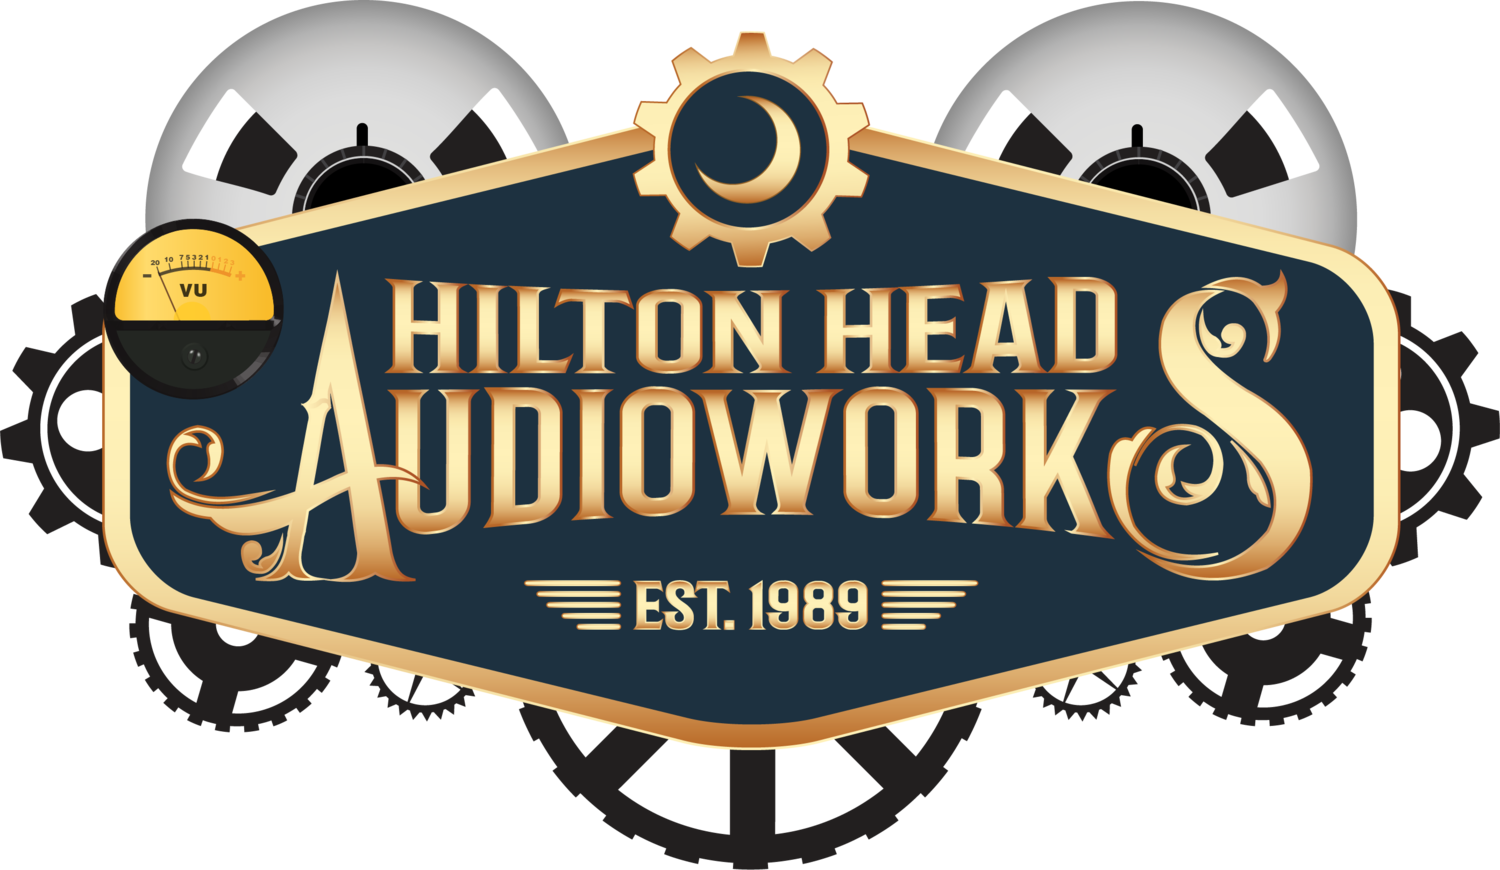 Hilton Head Audioworks